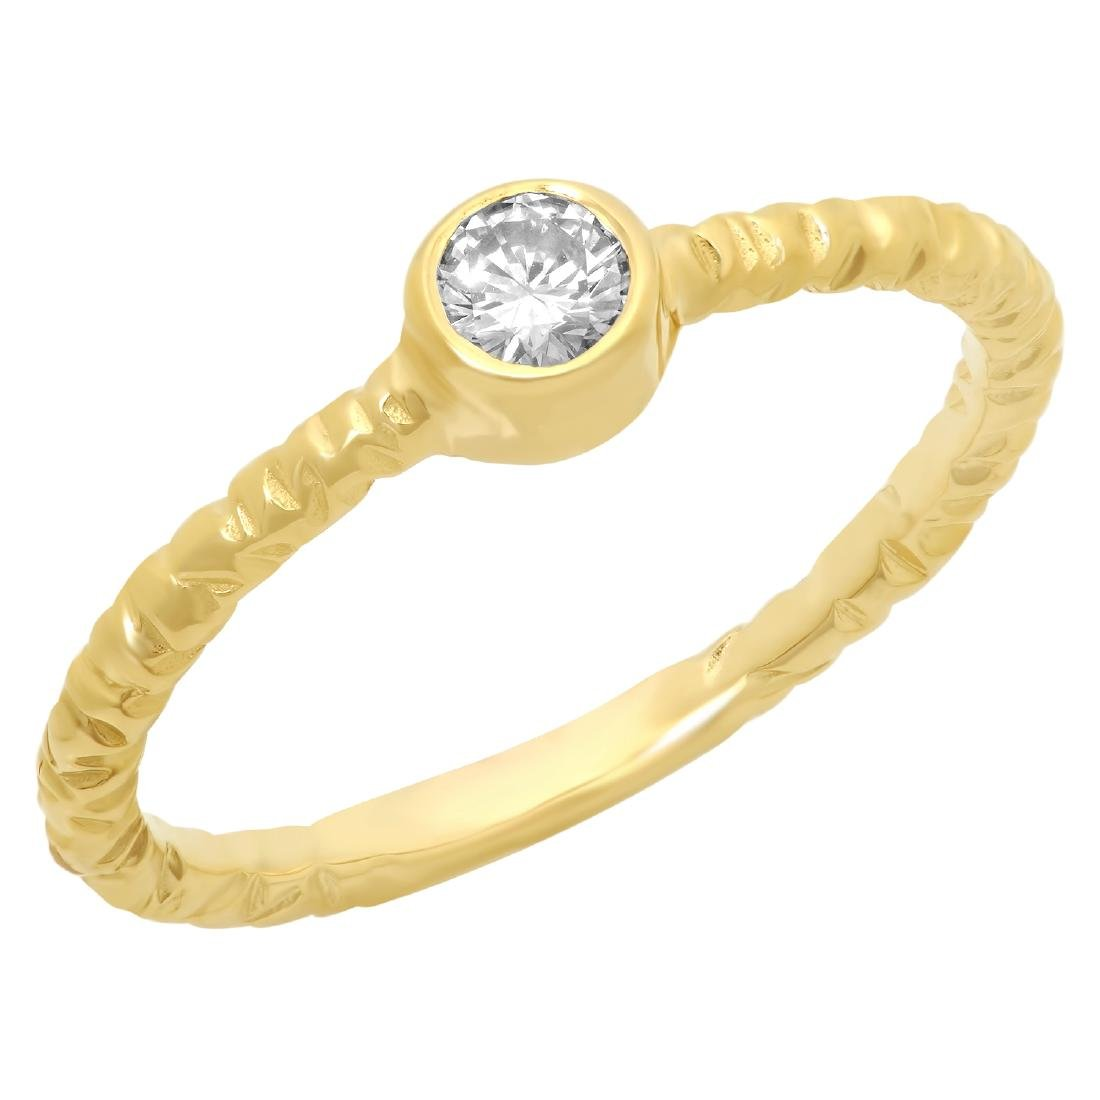 0.20 Carat Natural Diamond 18K Solid Yellow Gold Ring